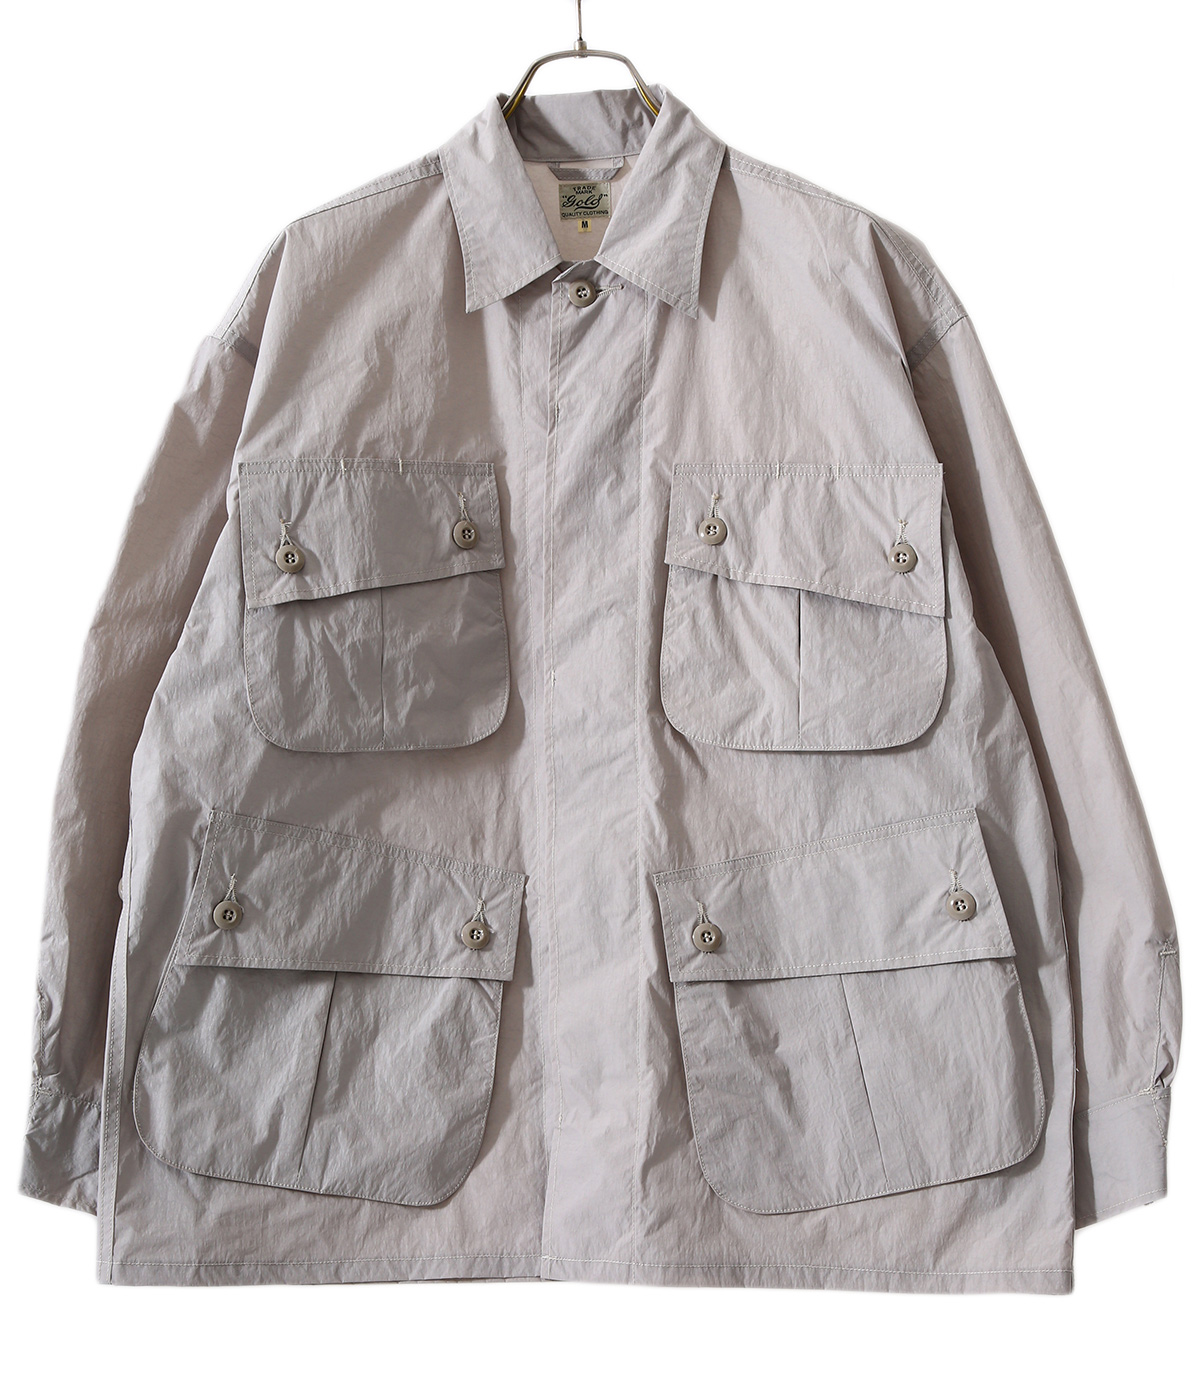 【予約】NYLON WEATHER JUNGLE FATIGUE JACKET